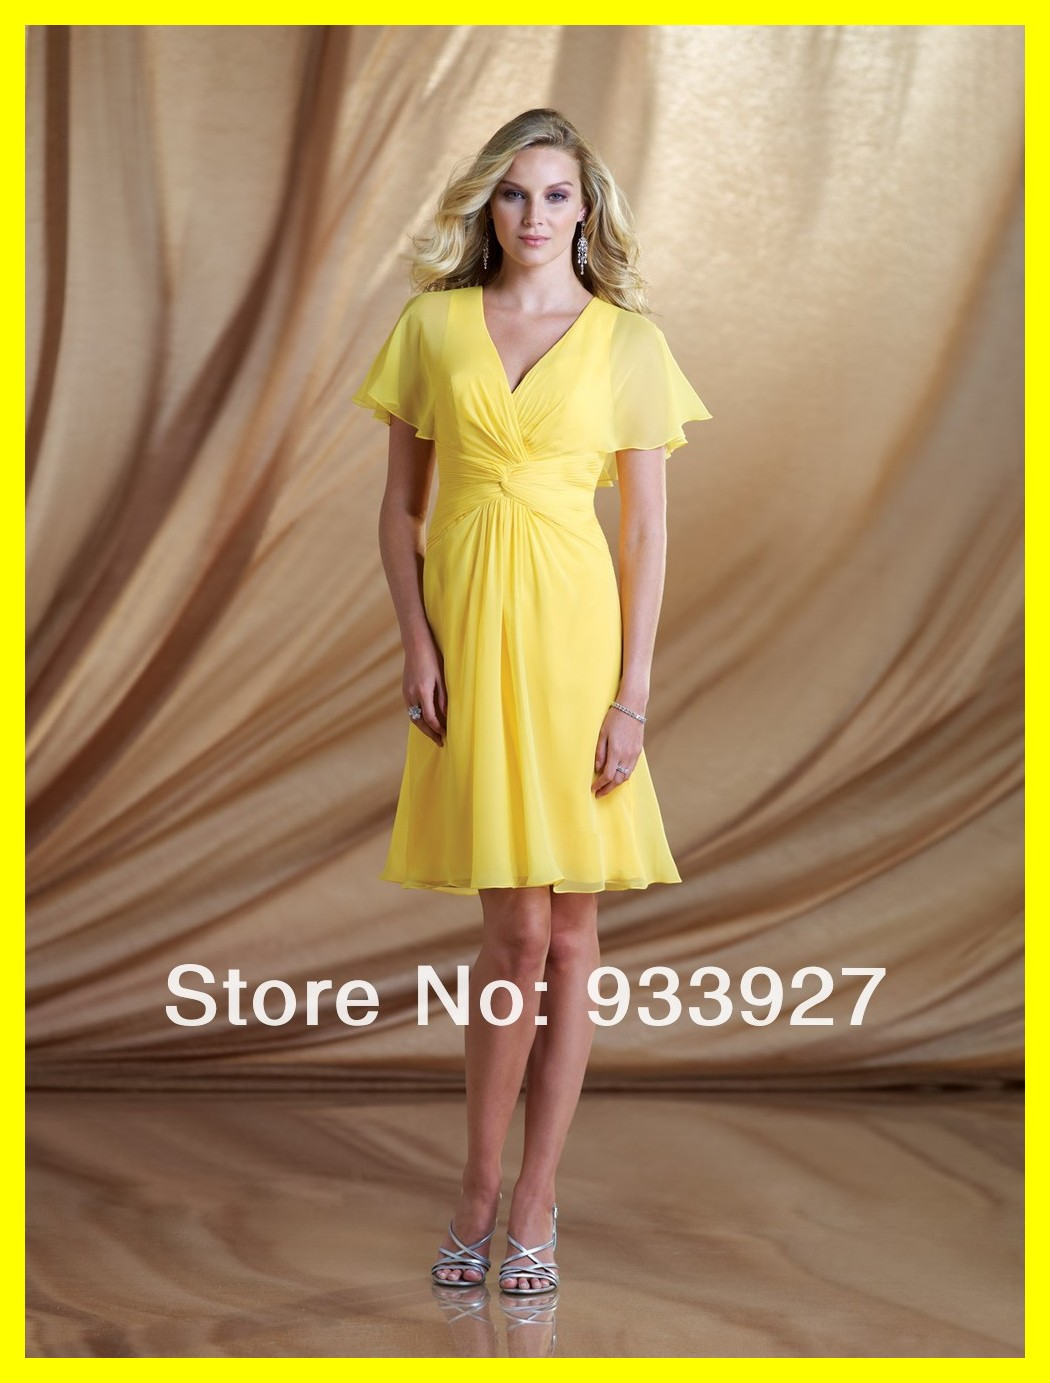 Baby Clothing Melbourne Mother Of The Bride Dresses Melbourne Au Discount